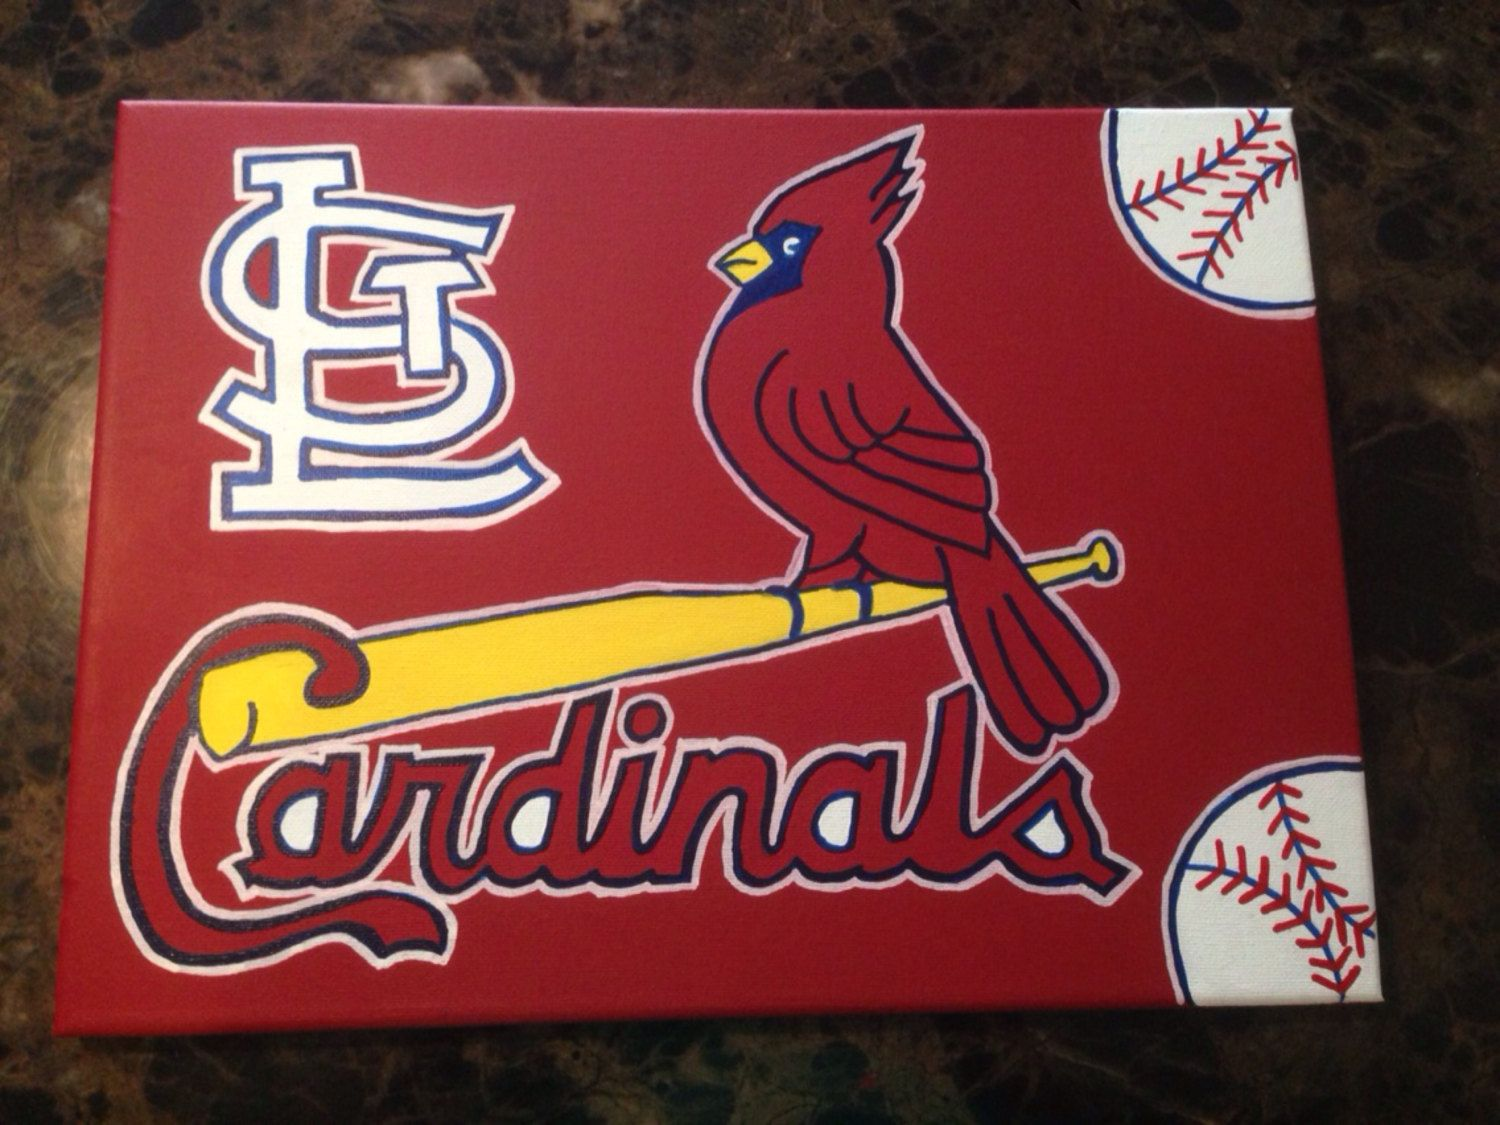 St Louis Cardinals Mlb Baseball Team Acrylic By Jolynnsplace 50 00 St Louis Cardinals St Louis Cardinals Baseball Mlb Baseball Teams